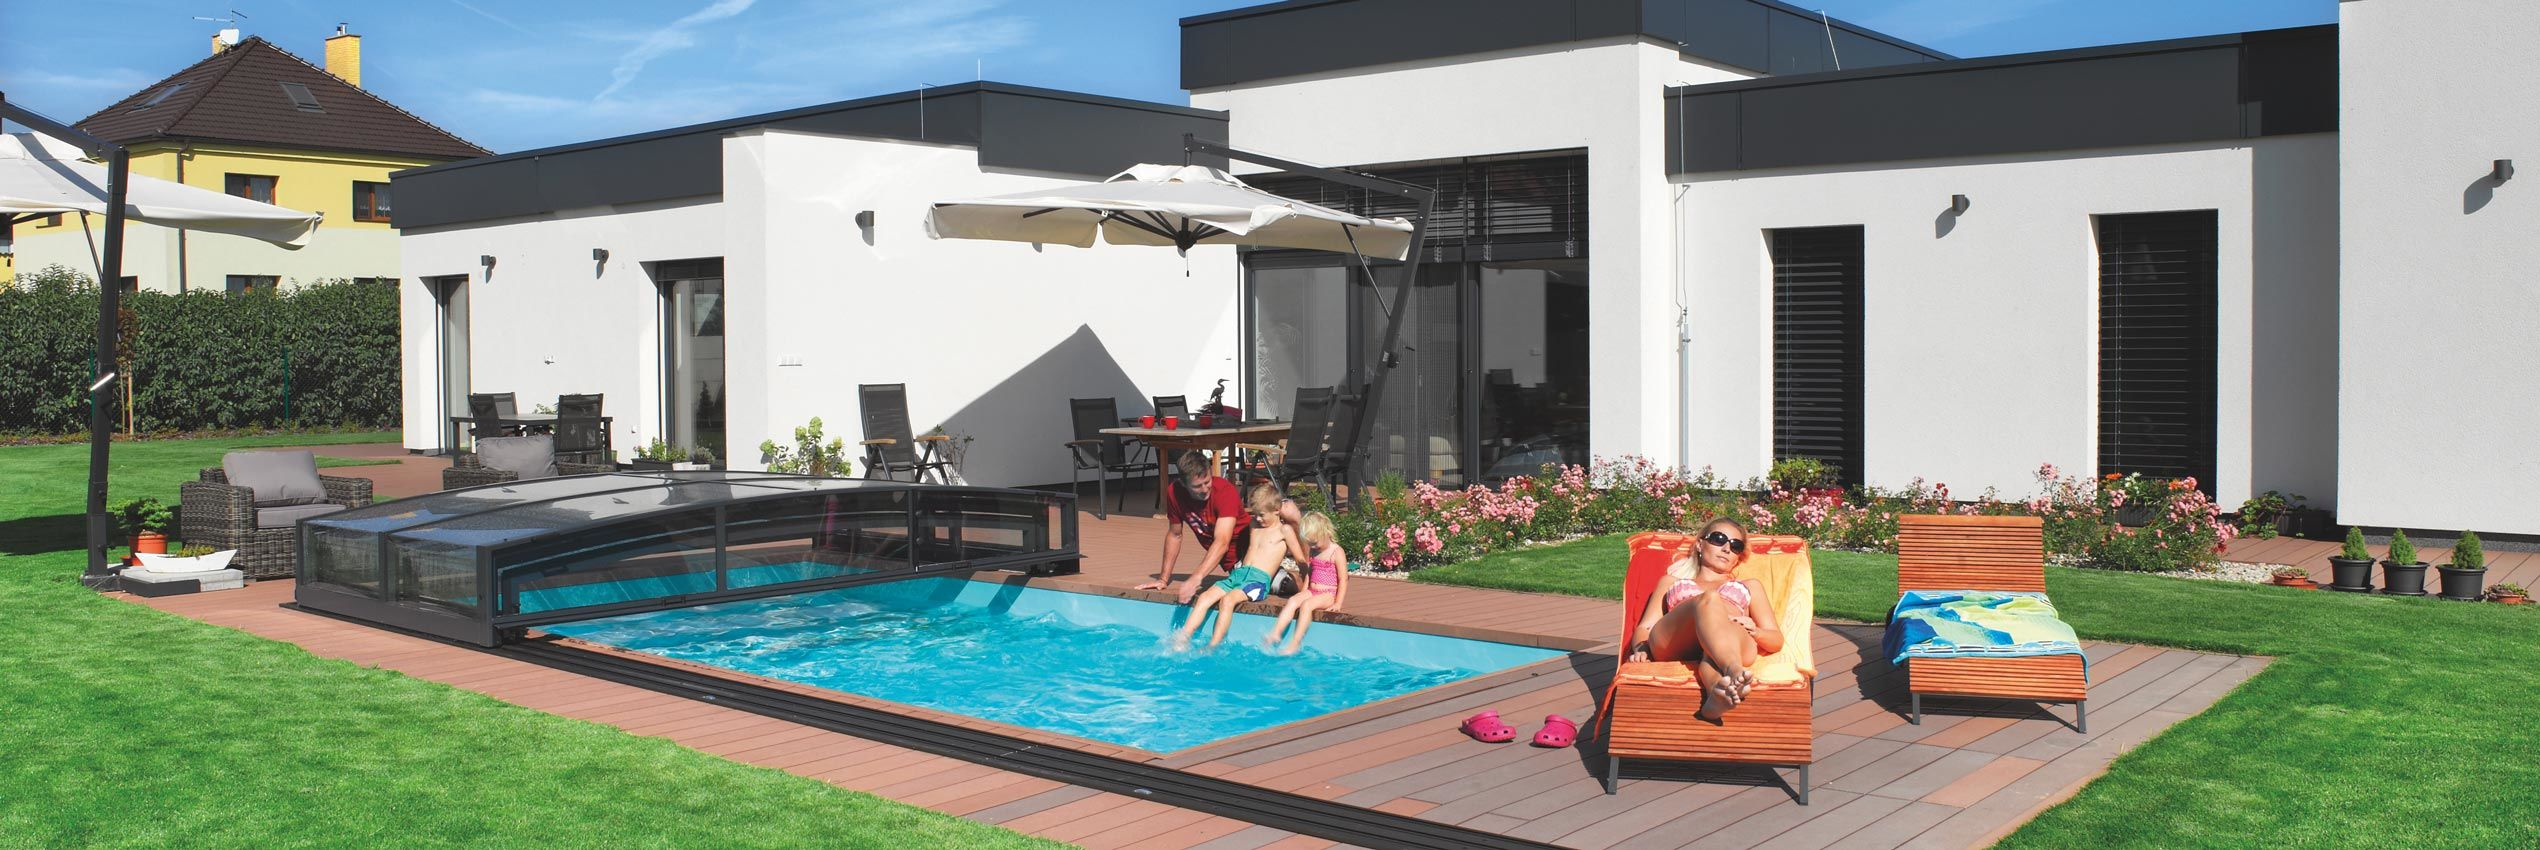 swimming pool with hot tub designs with Sunrooms Enclosures on tallmanpools furthermore Upscale Backyard Outdoor In Ground Swimming Pools additionally Copper Leaf Pools Photo Gallery furthermore Photo Gallery besides Pictures Of Swimming Pools.